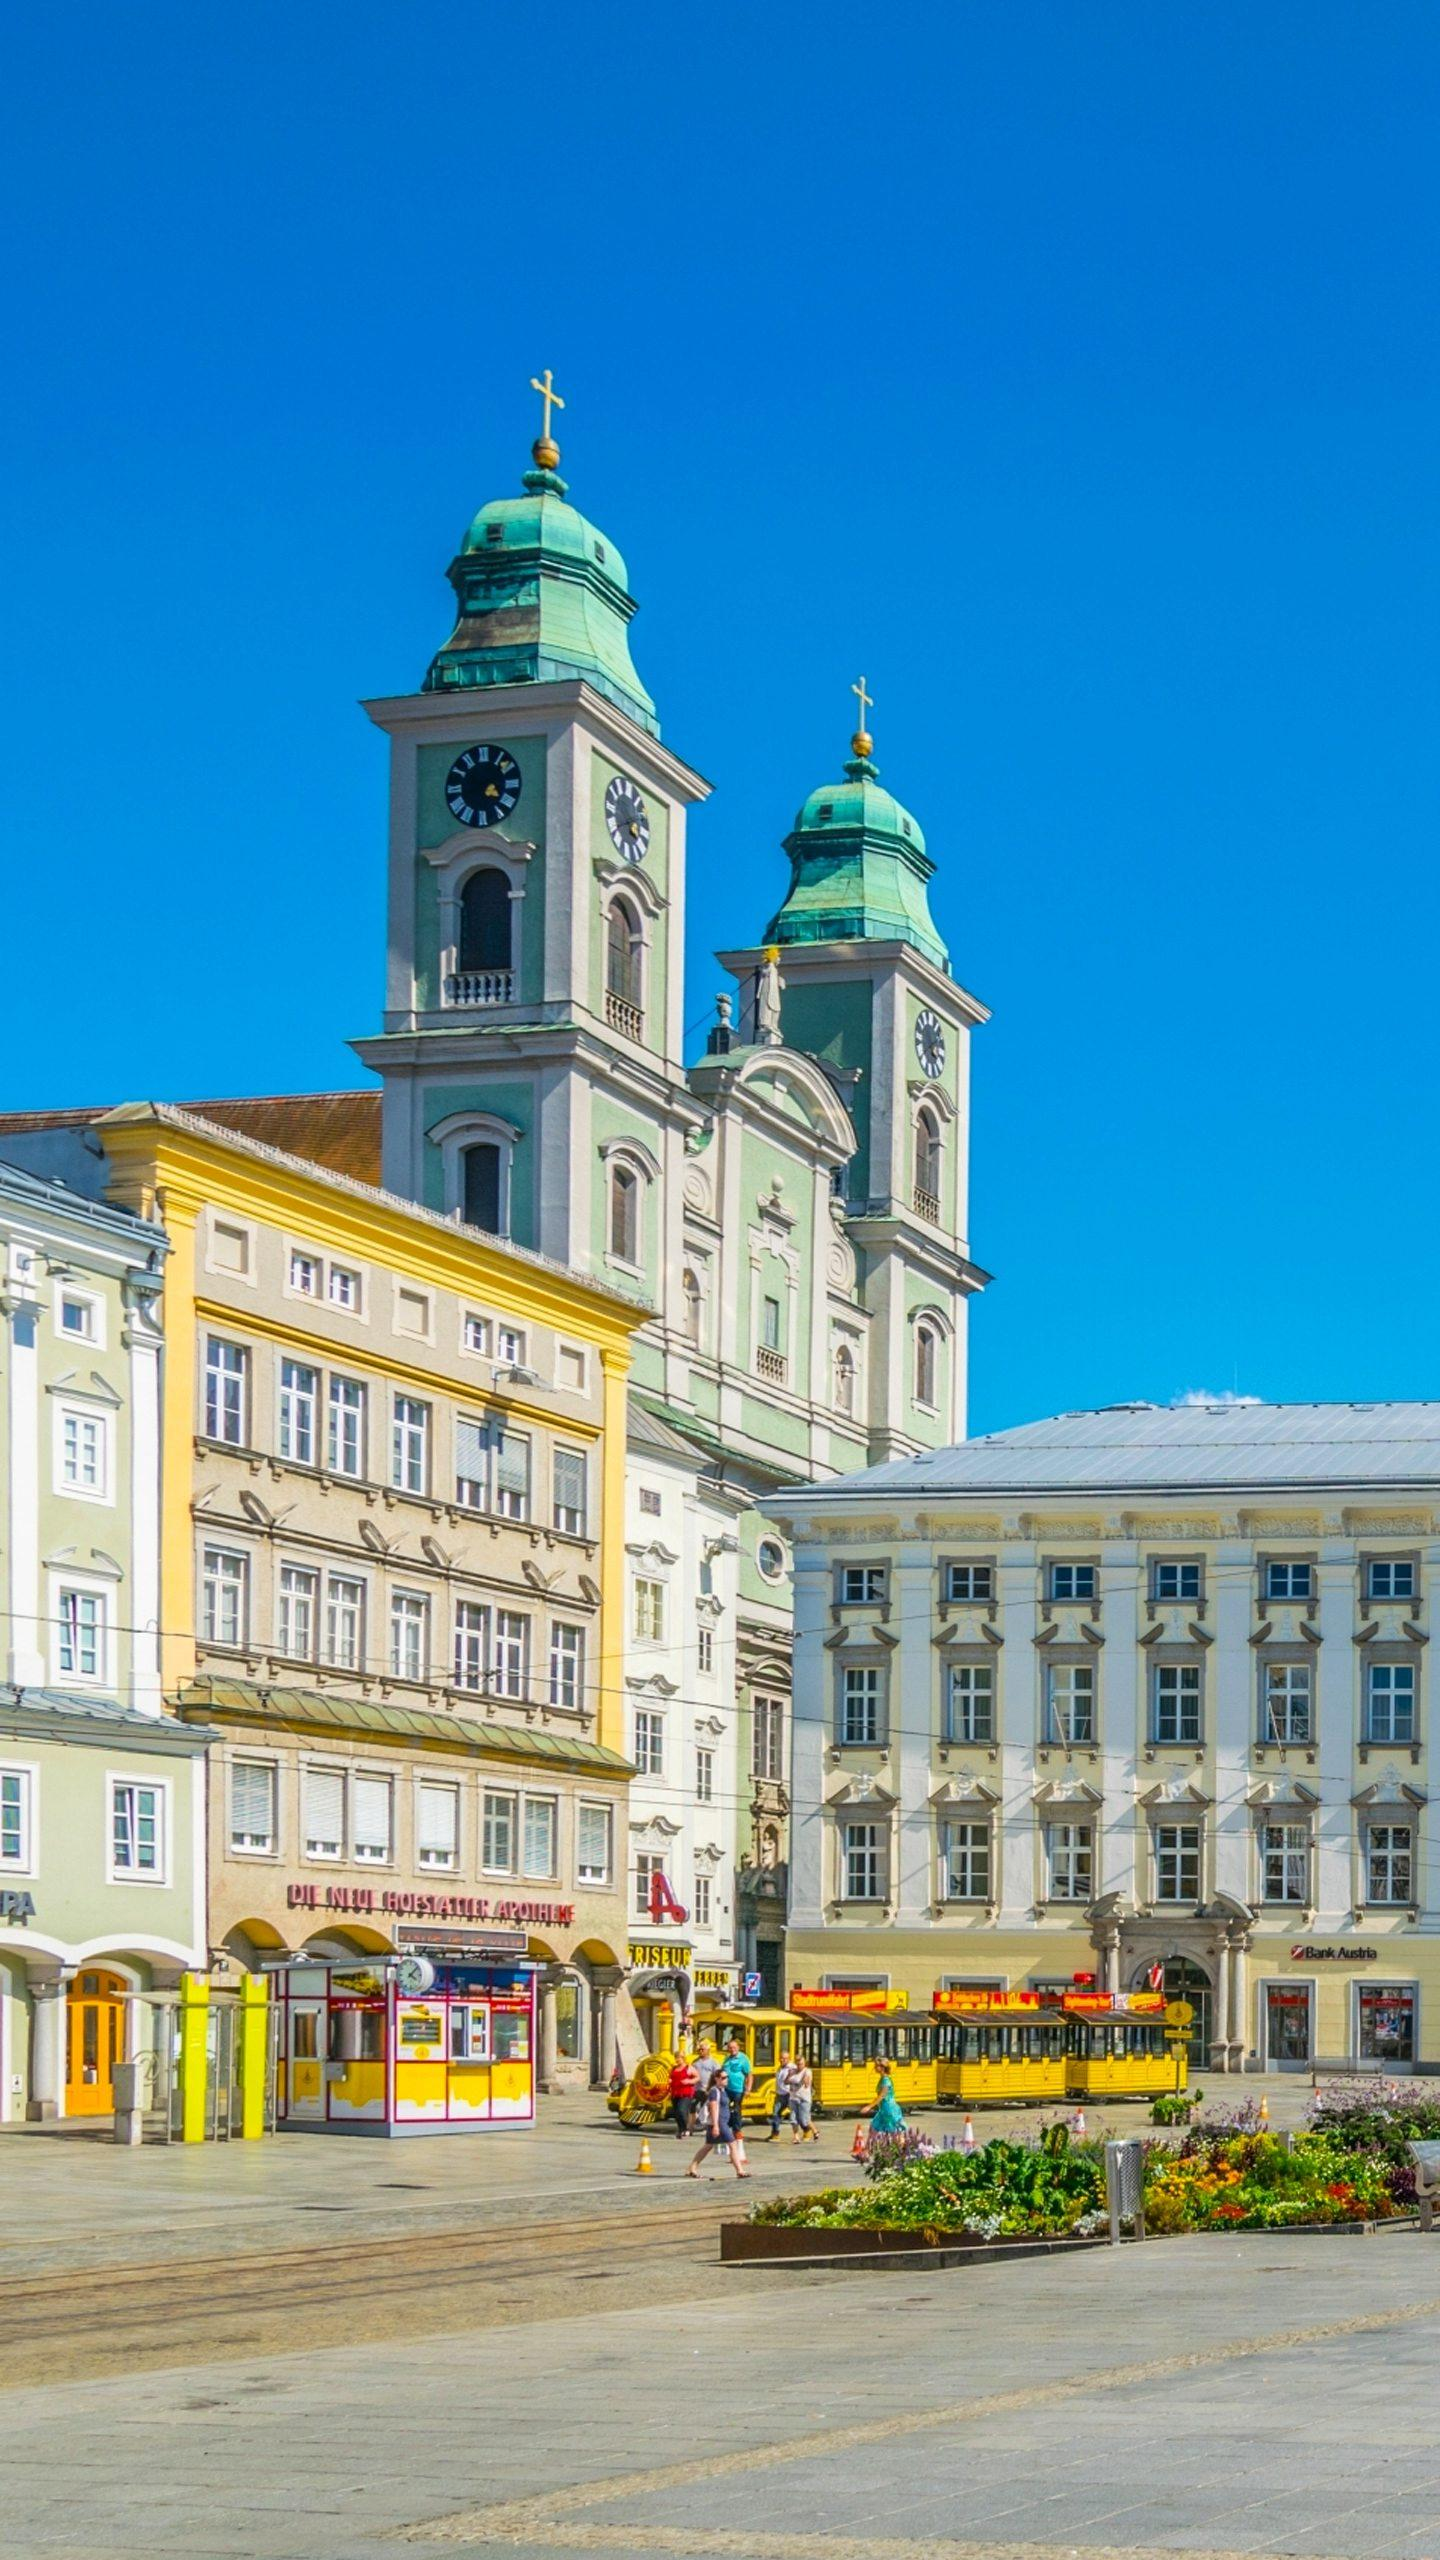 Austria - Linz. The capital of Upper Austria, originally established by the Romans, became an important trading center in the Middle Ages.